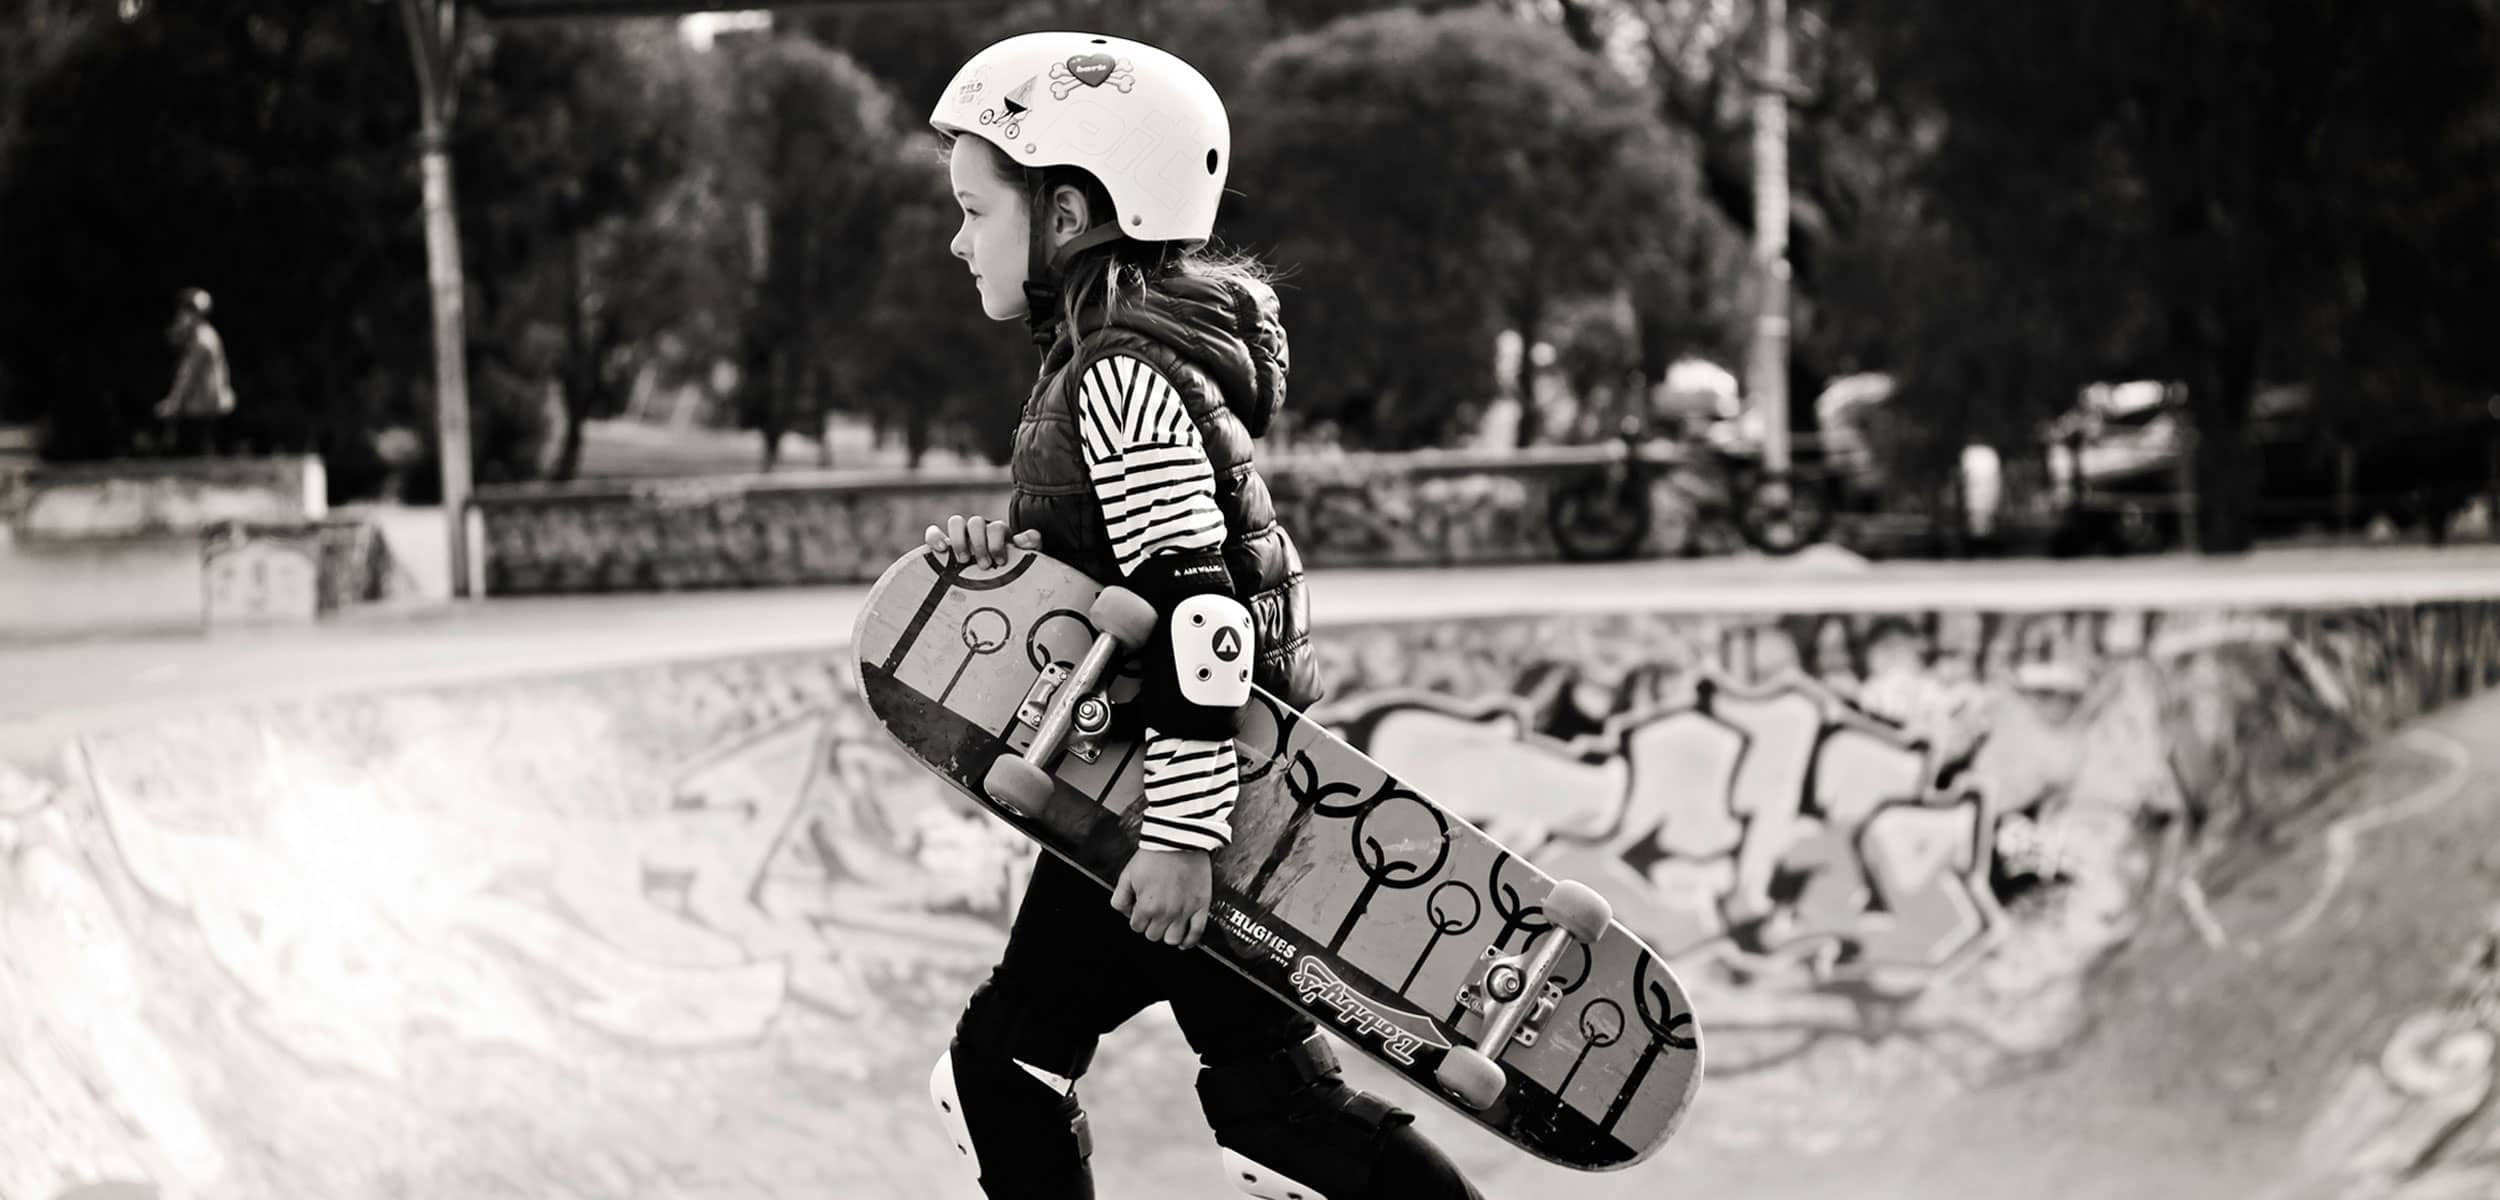 5 Best Skateboards For 8 Year Old